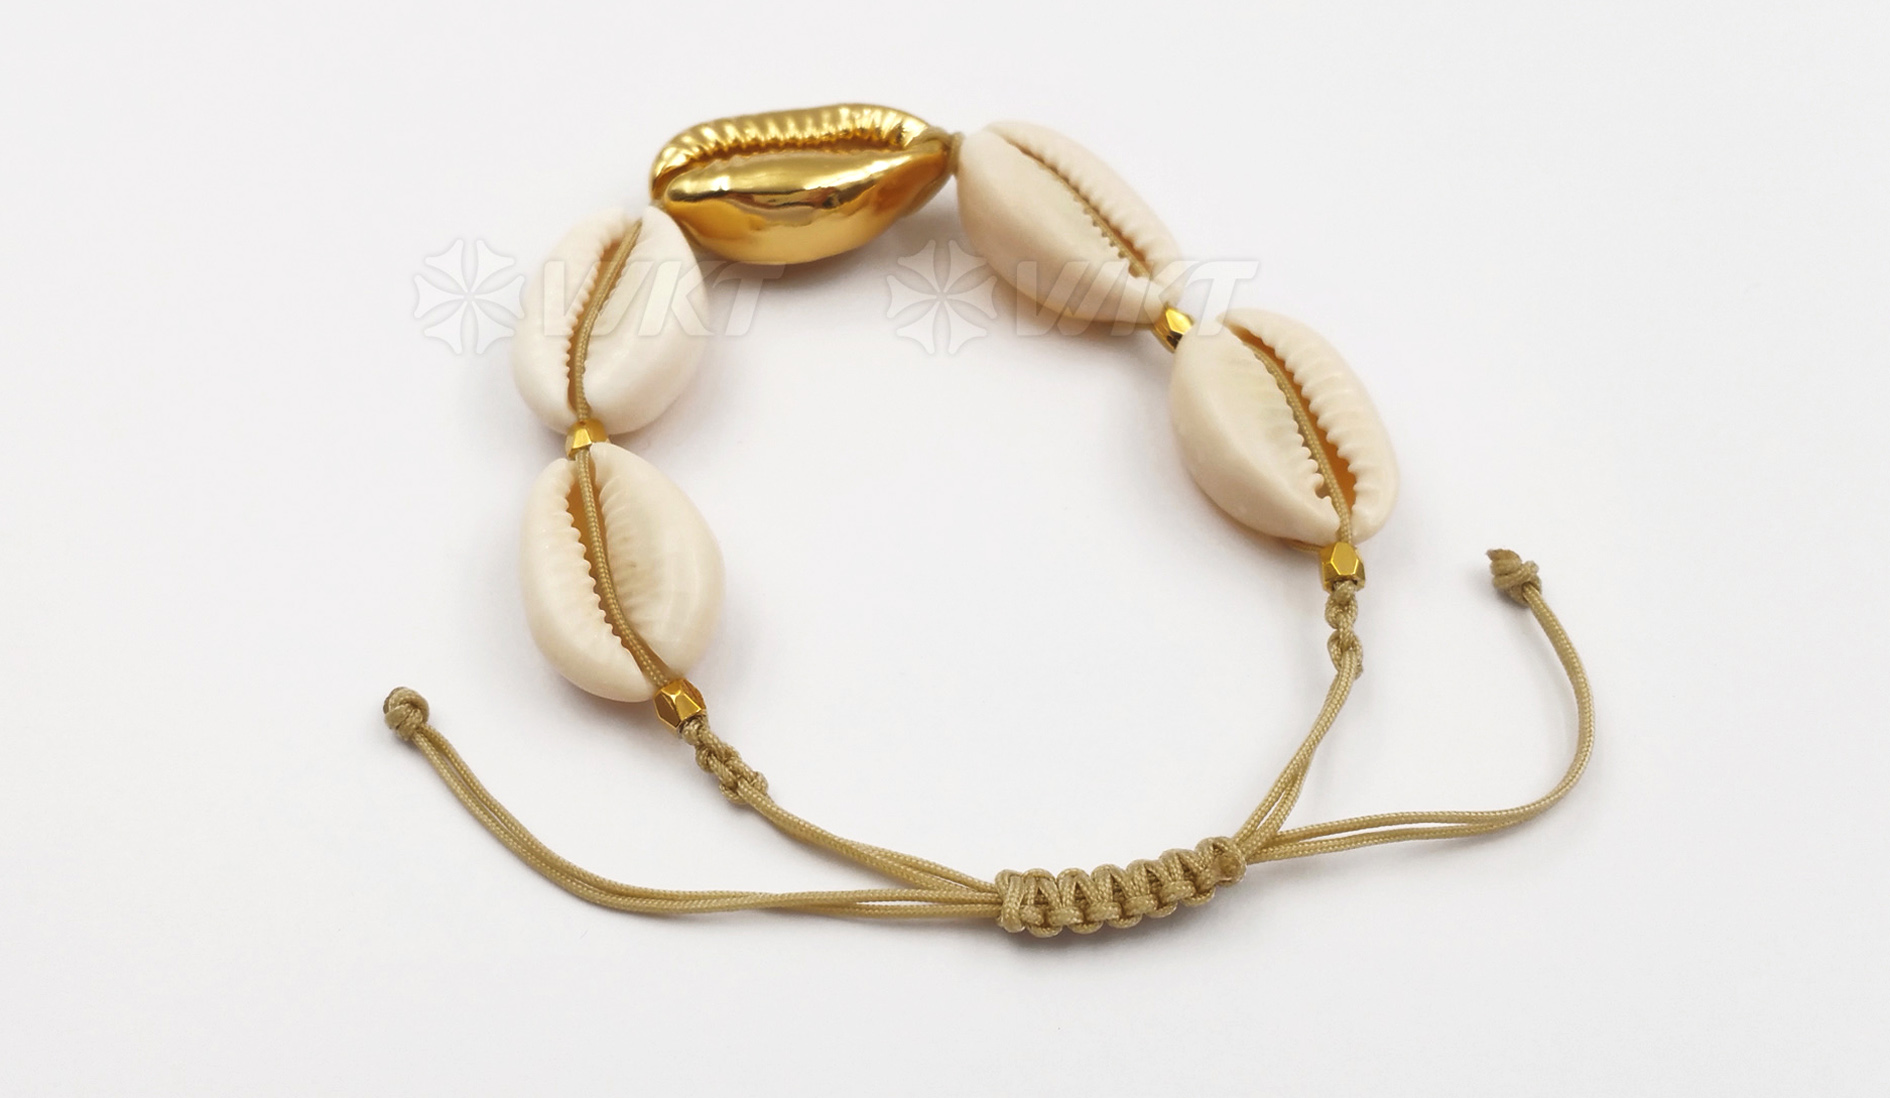 WT-B410 Wholesale Fashion Cowrie Shell and Jewelry with white for women jewelry Gold shell Connector Bracelets